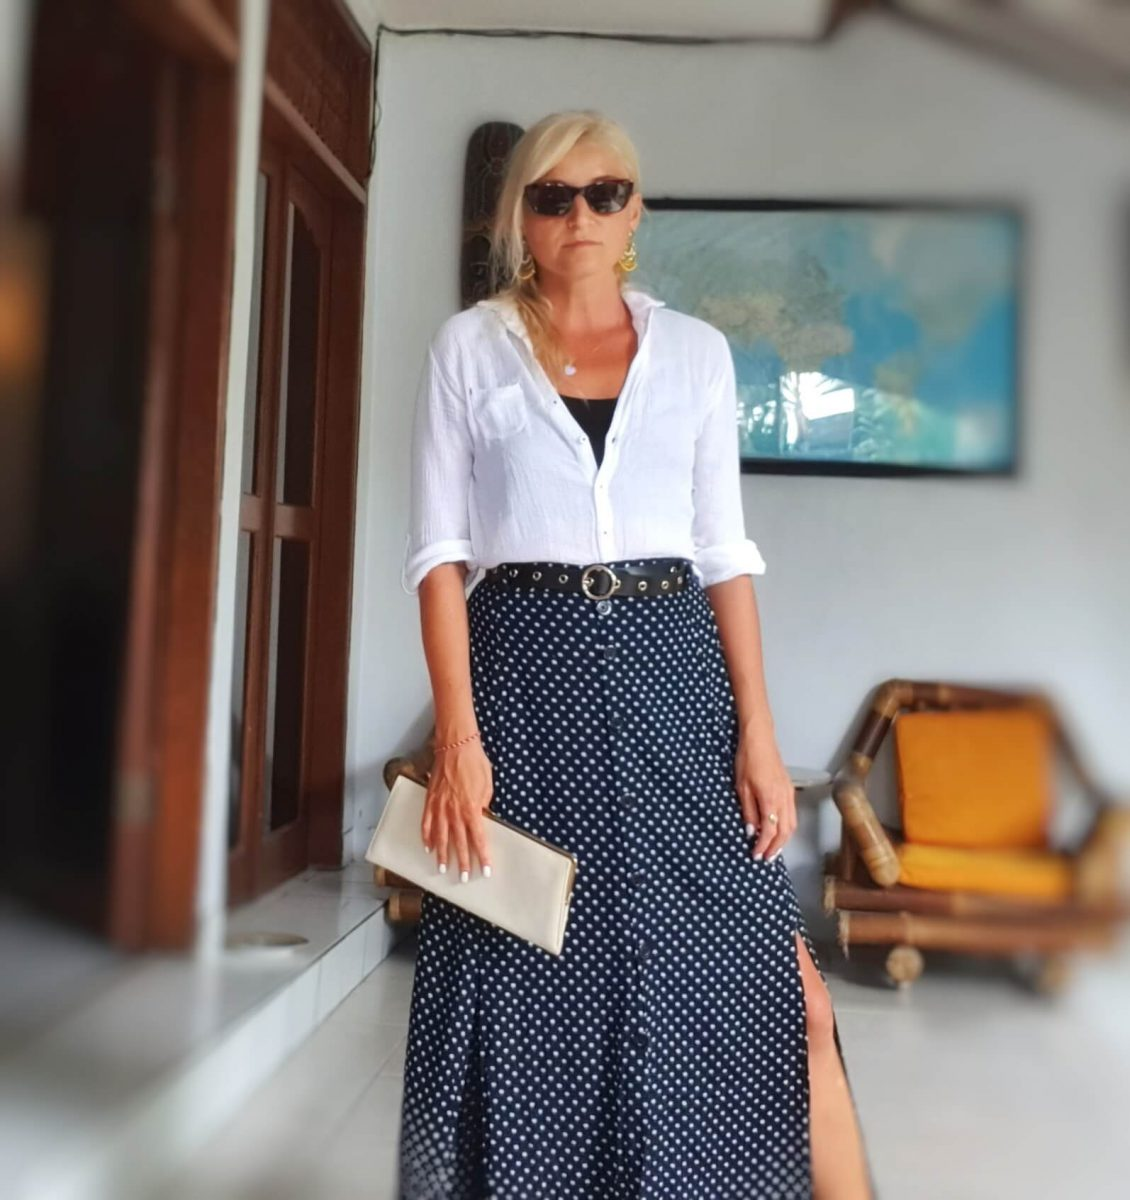 Polka Dot Business Outfit